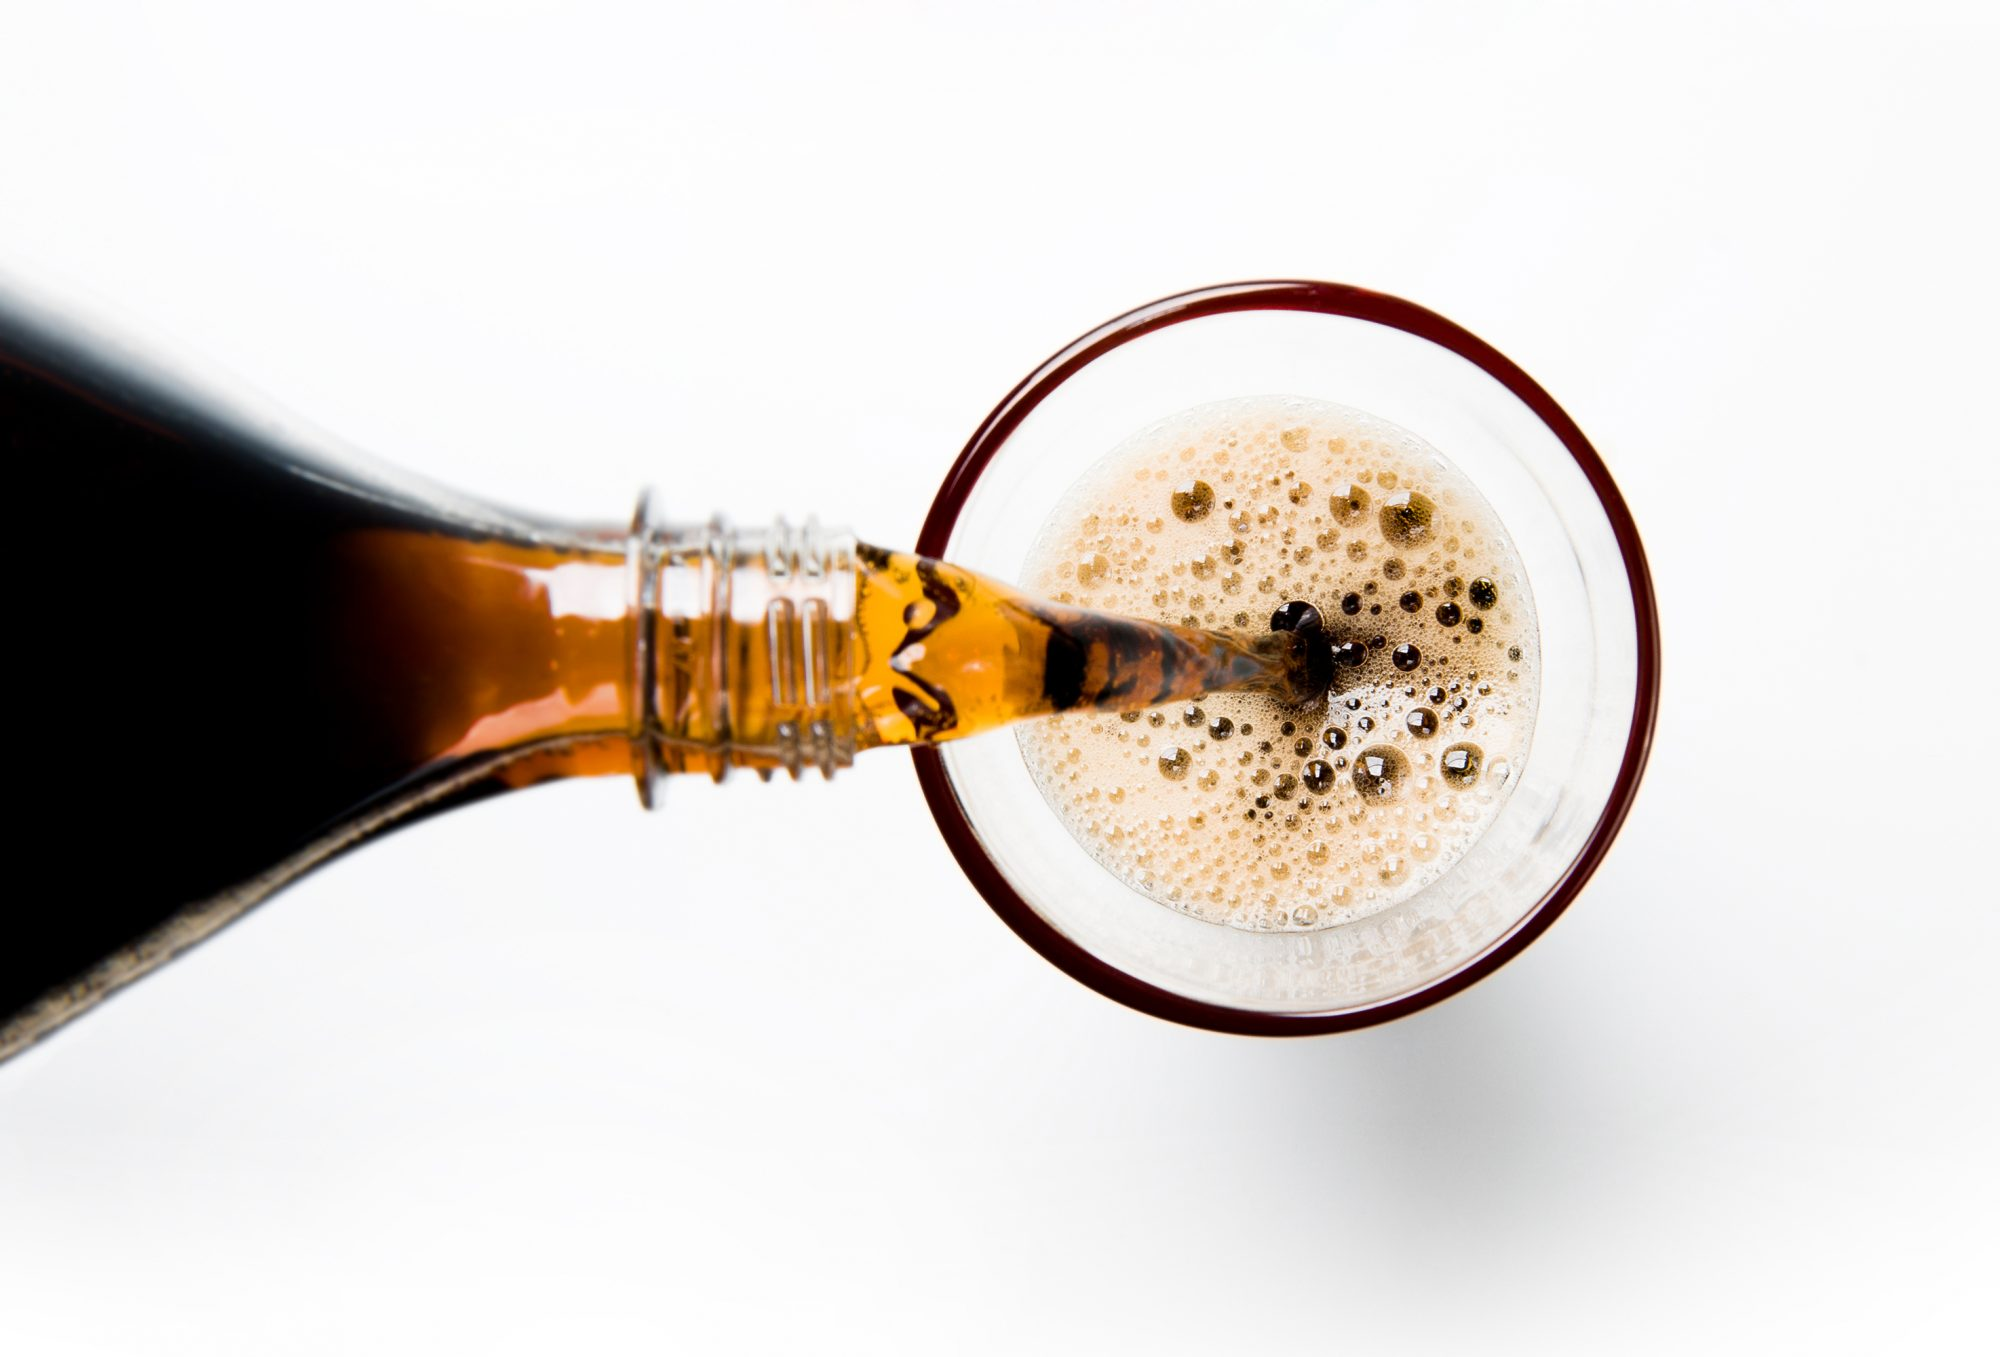 A glass of cola being poured into a glass